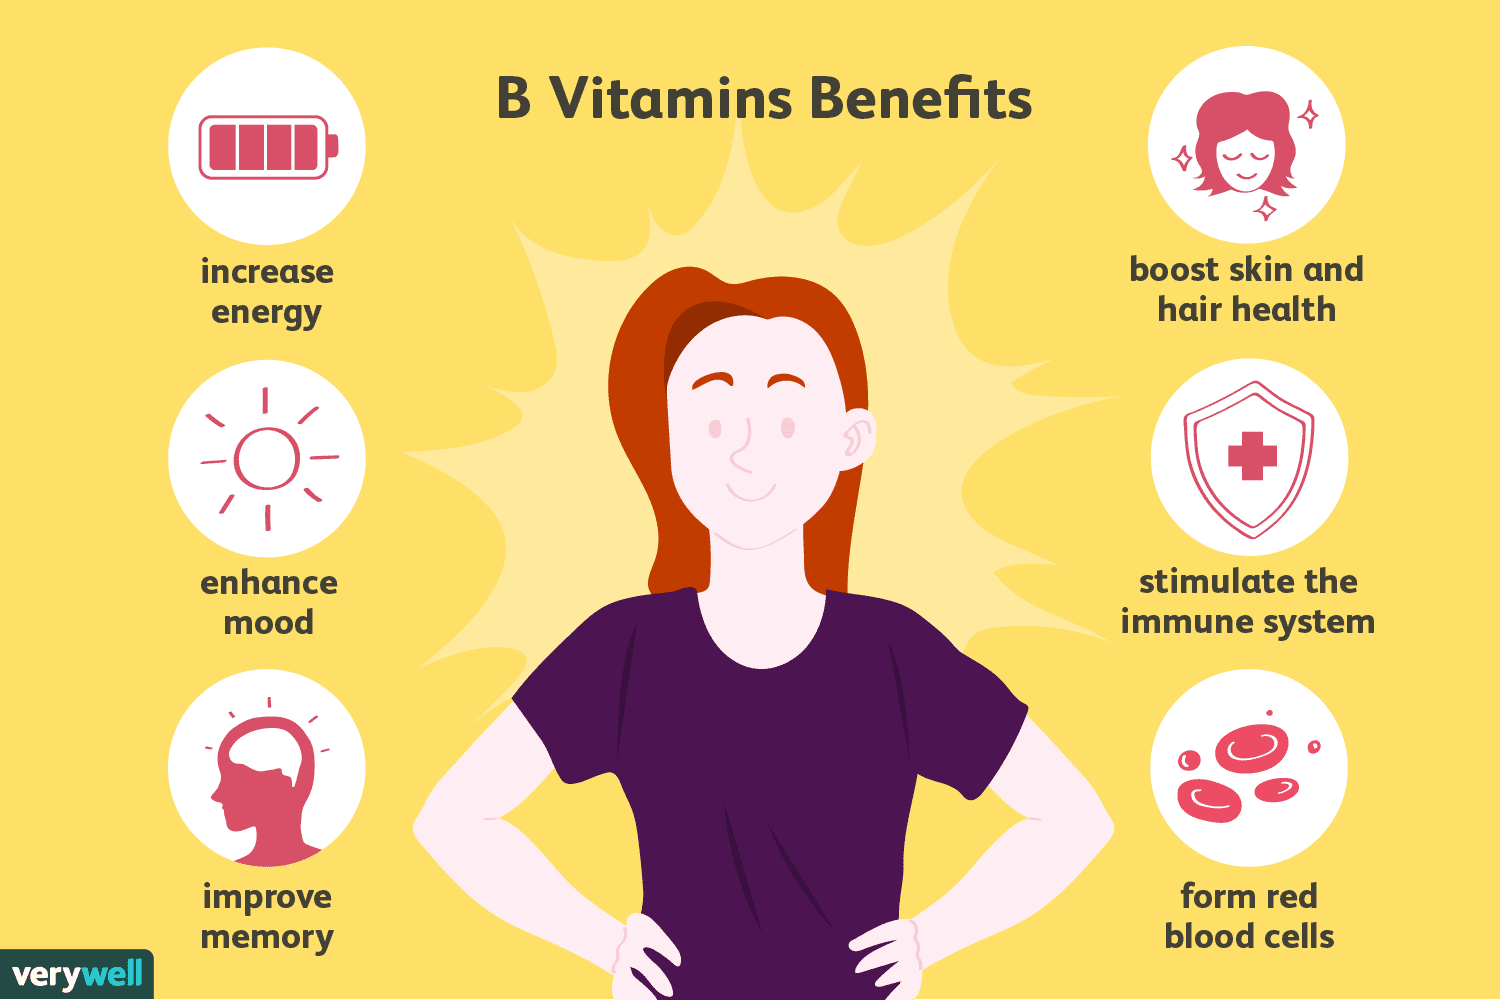 B Complex Vitamins Sources and Benefits